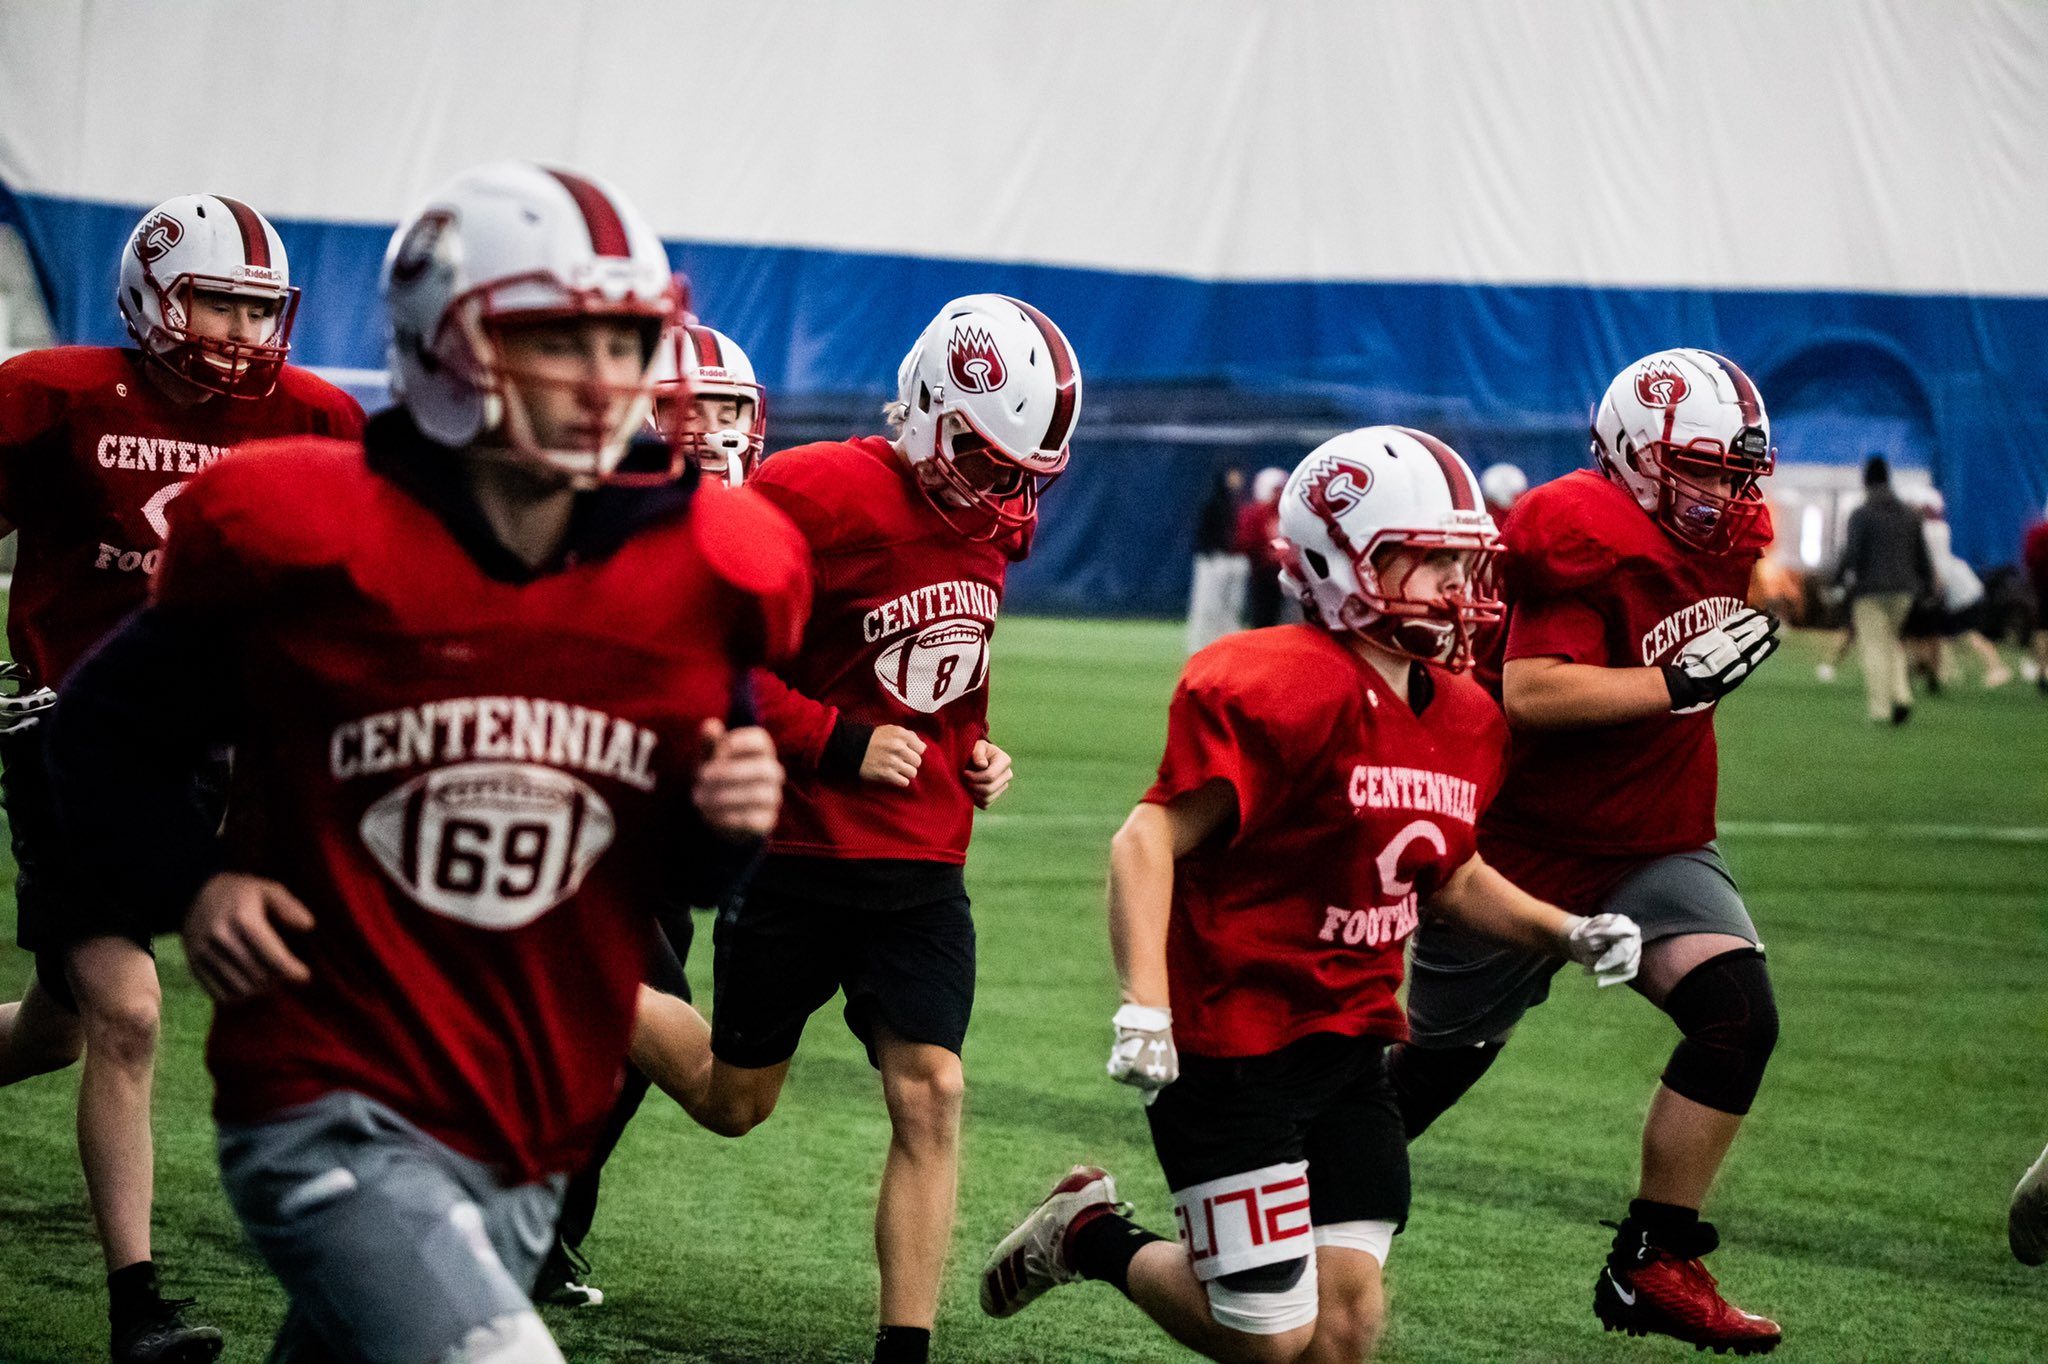 Centennial Cougar Football practiced in the M Health Fairview Dome.